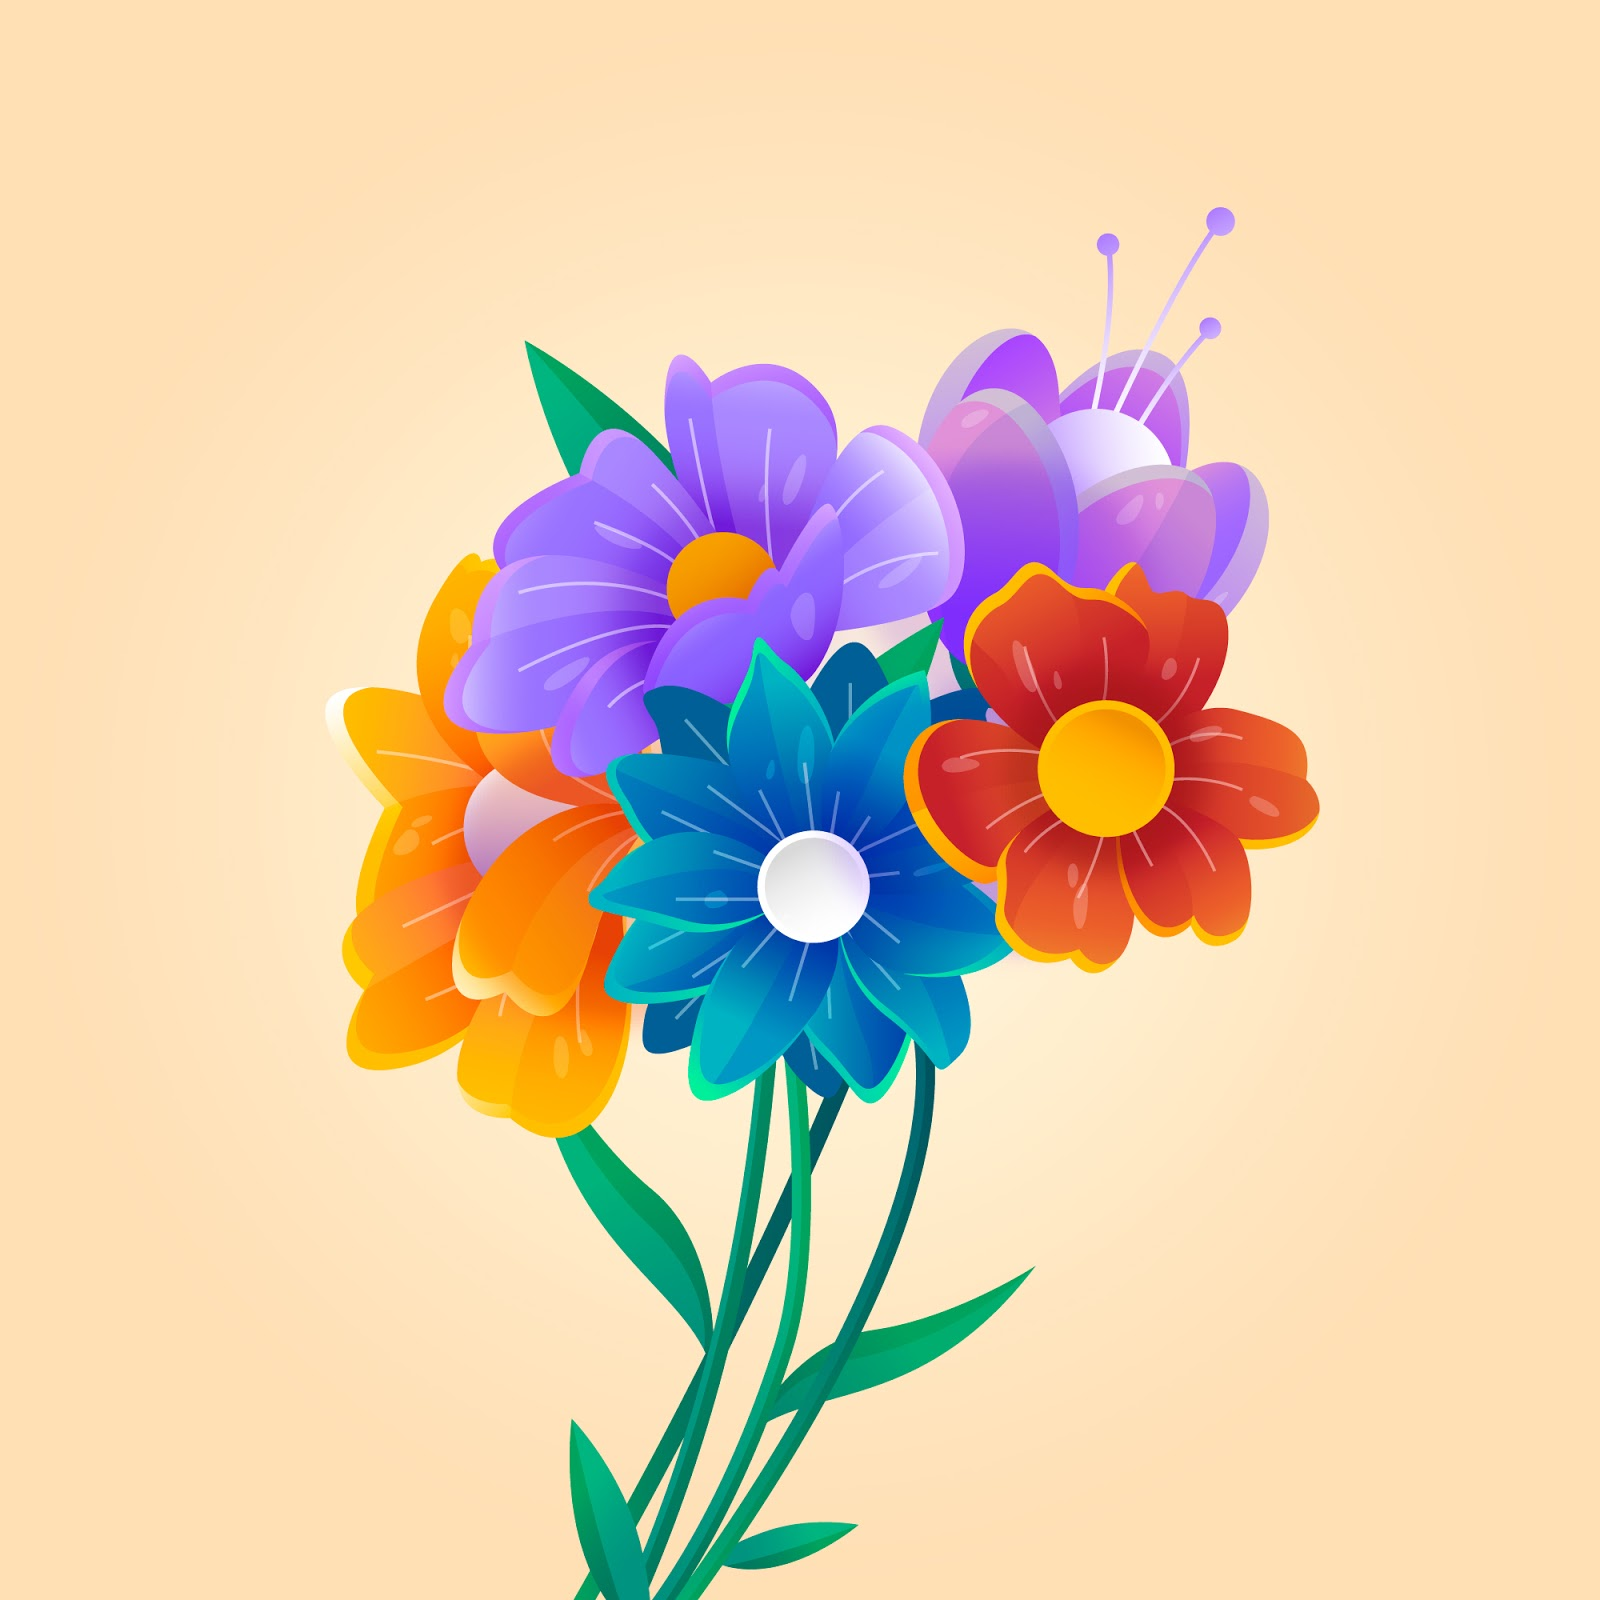 Gradient Spring Paper Style Flowers Free Download Vector CDR, AI, EPS and PNG Formats